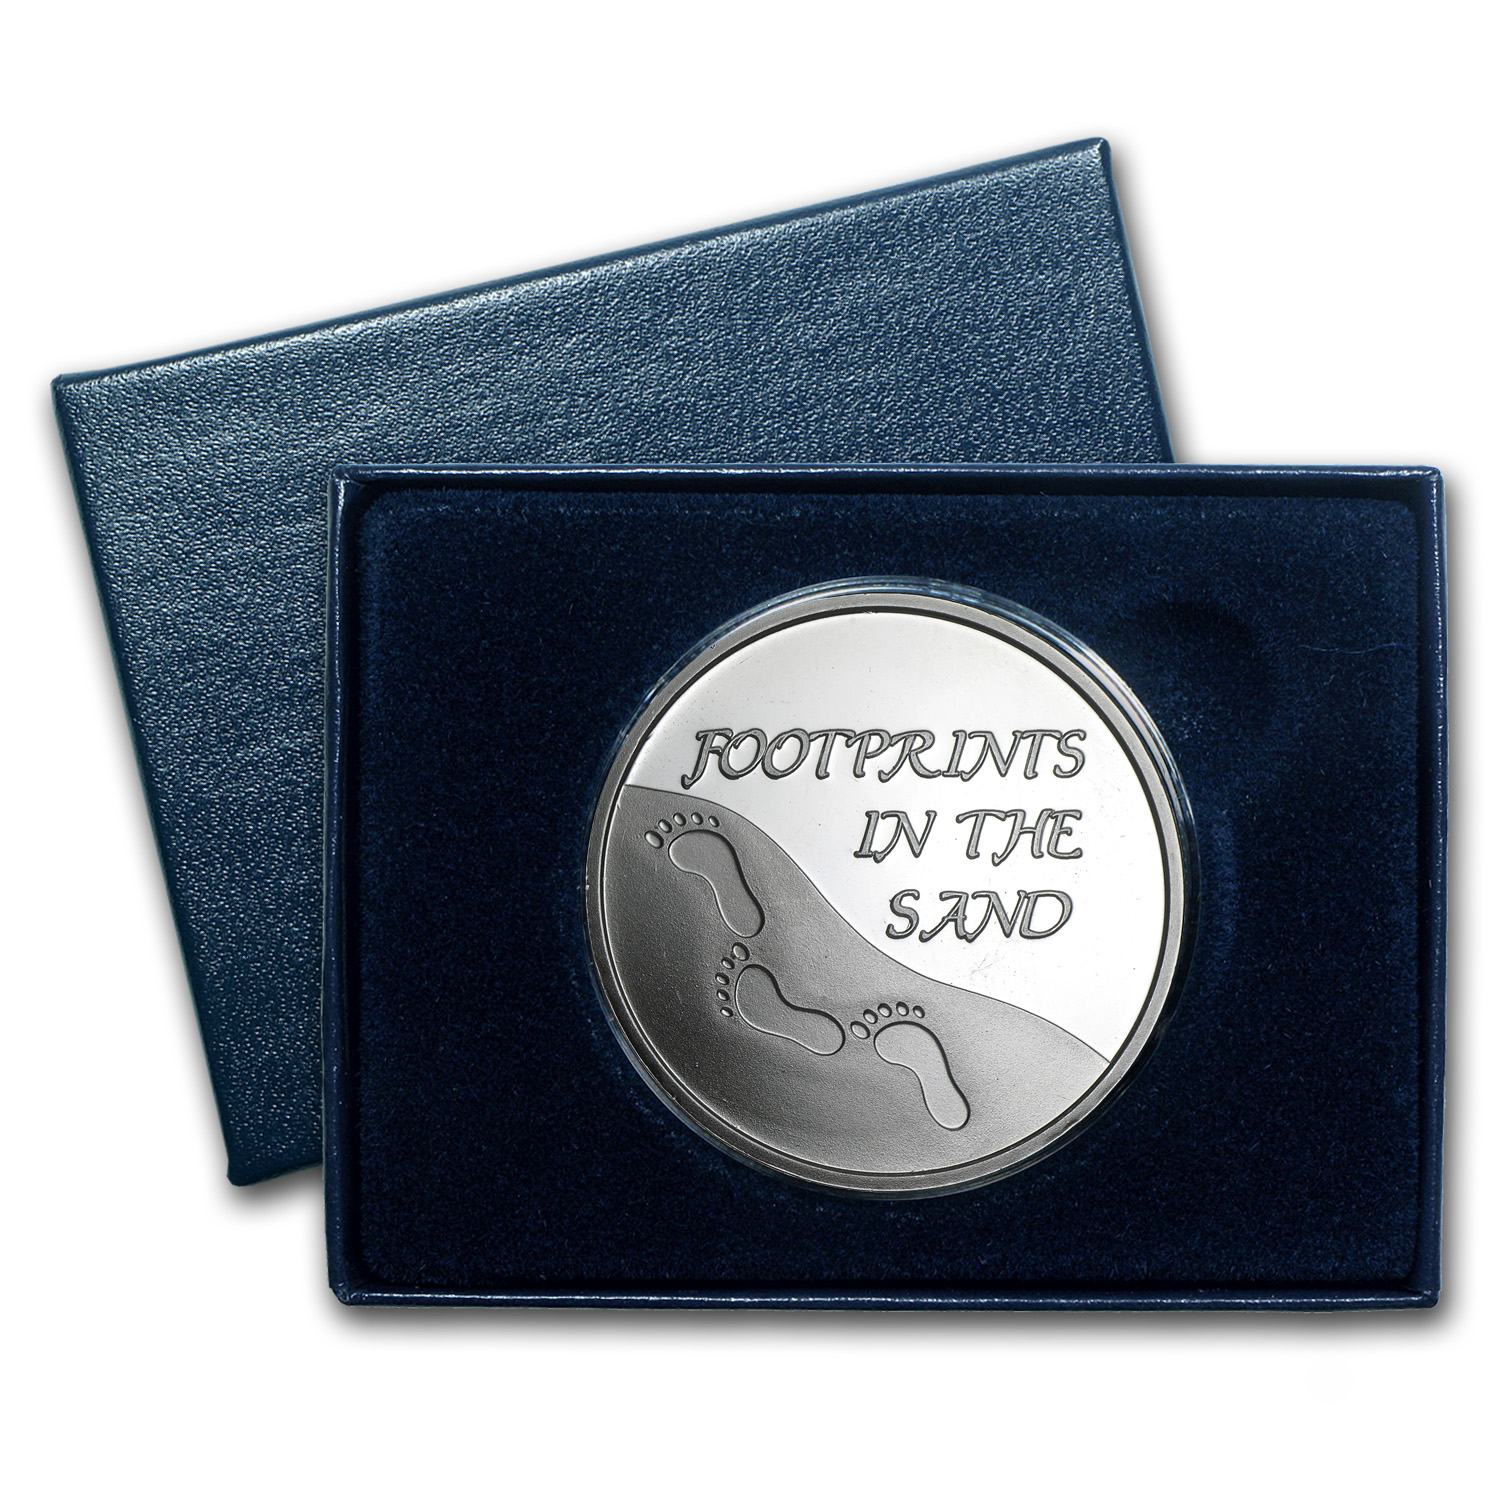 1 oz Silver Round - Footprints in the Sand (w/Box & Capsule)